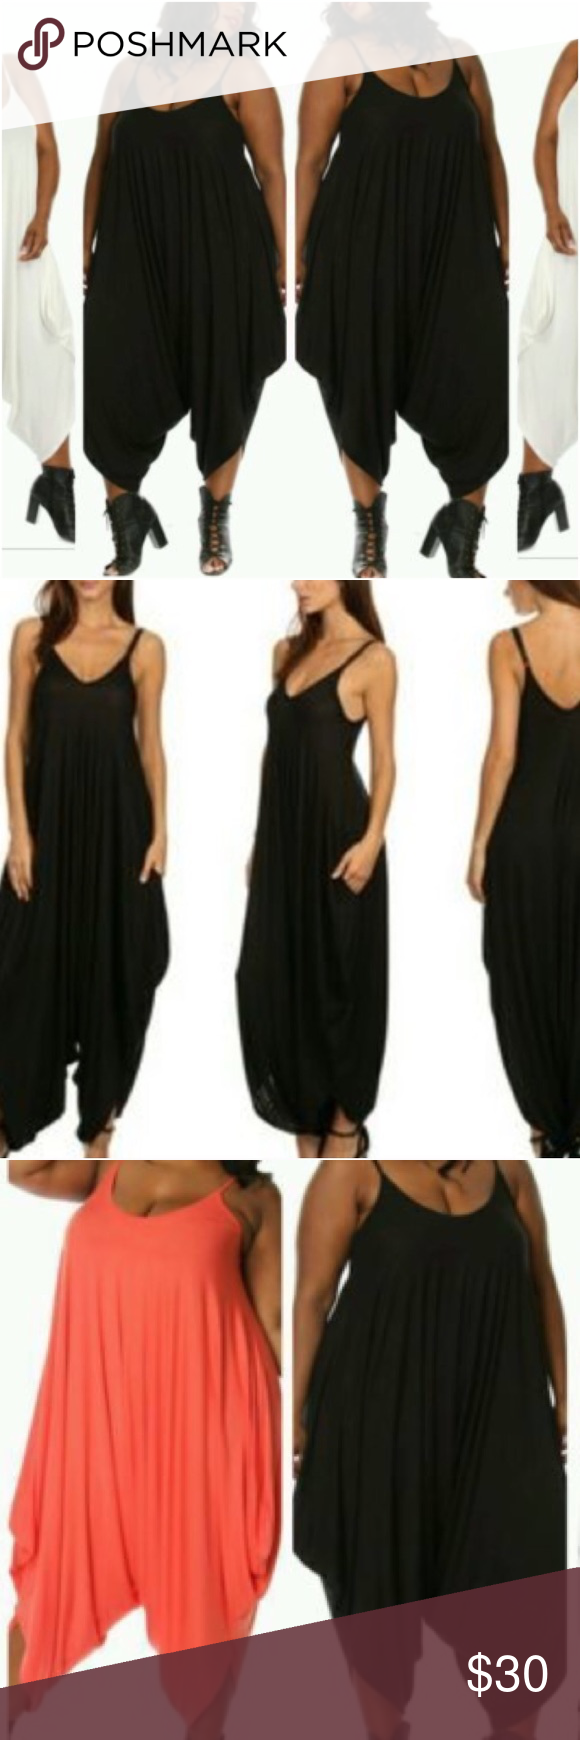 fc885ca2e78 HP-12 3 🌟 Plus Size Black Parachute Romper Super comfortable Black  spaghetti strap jumpsuit with harem style bottom. NWT Pants Jumpsuits    Rompers